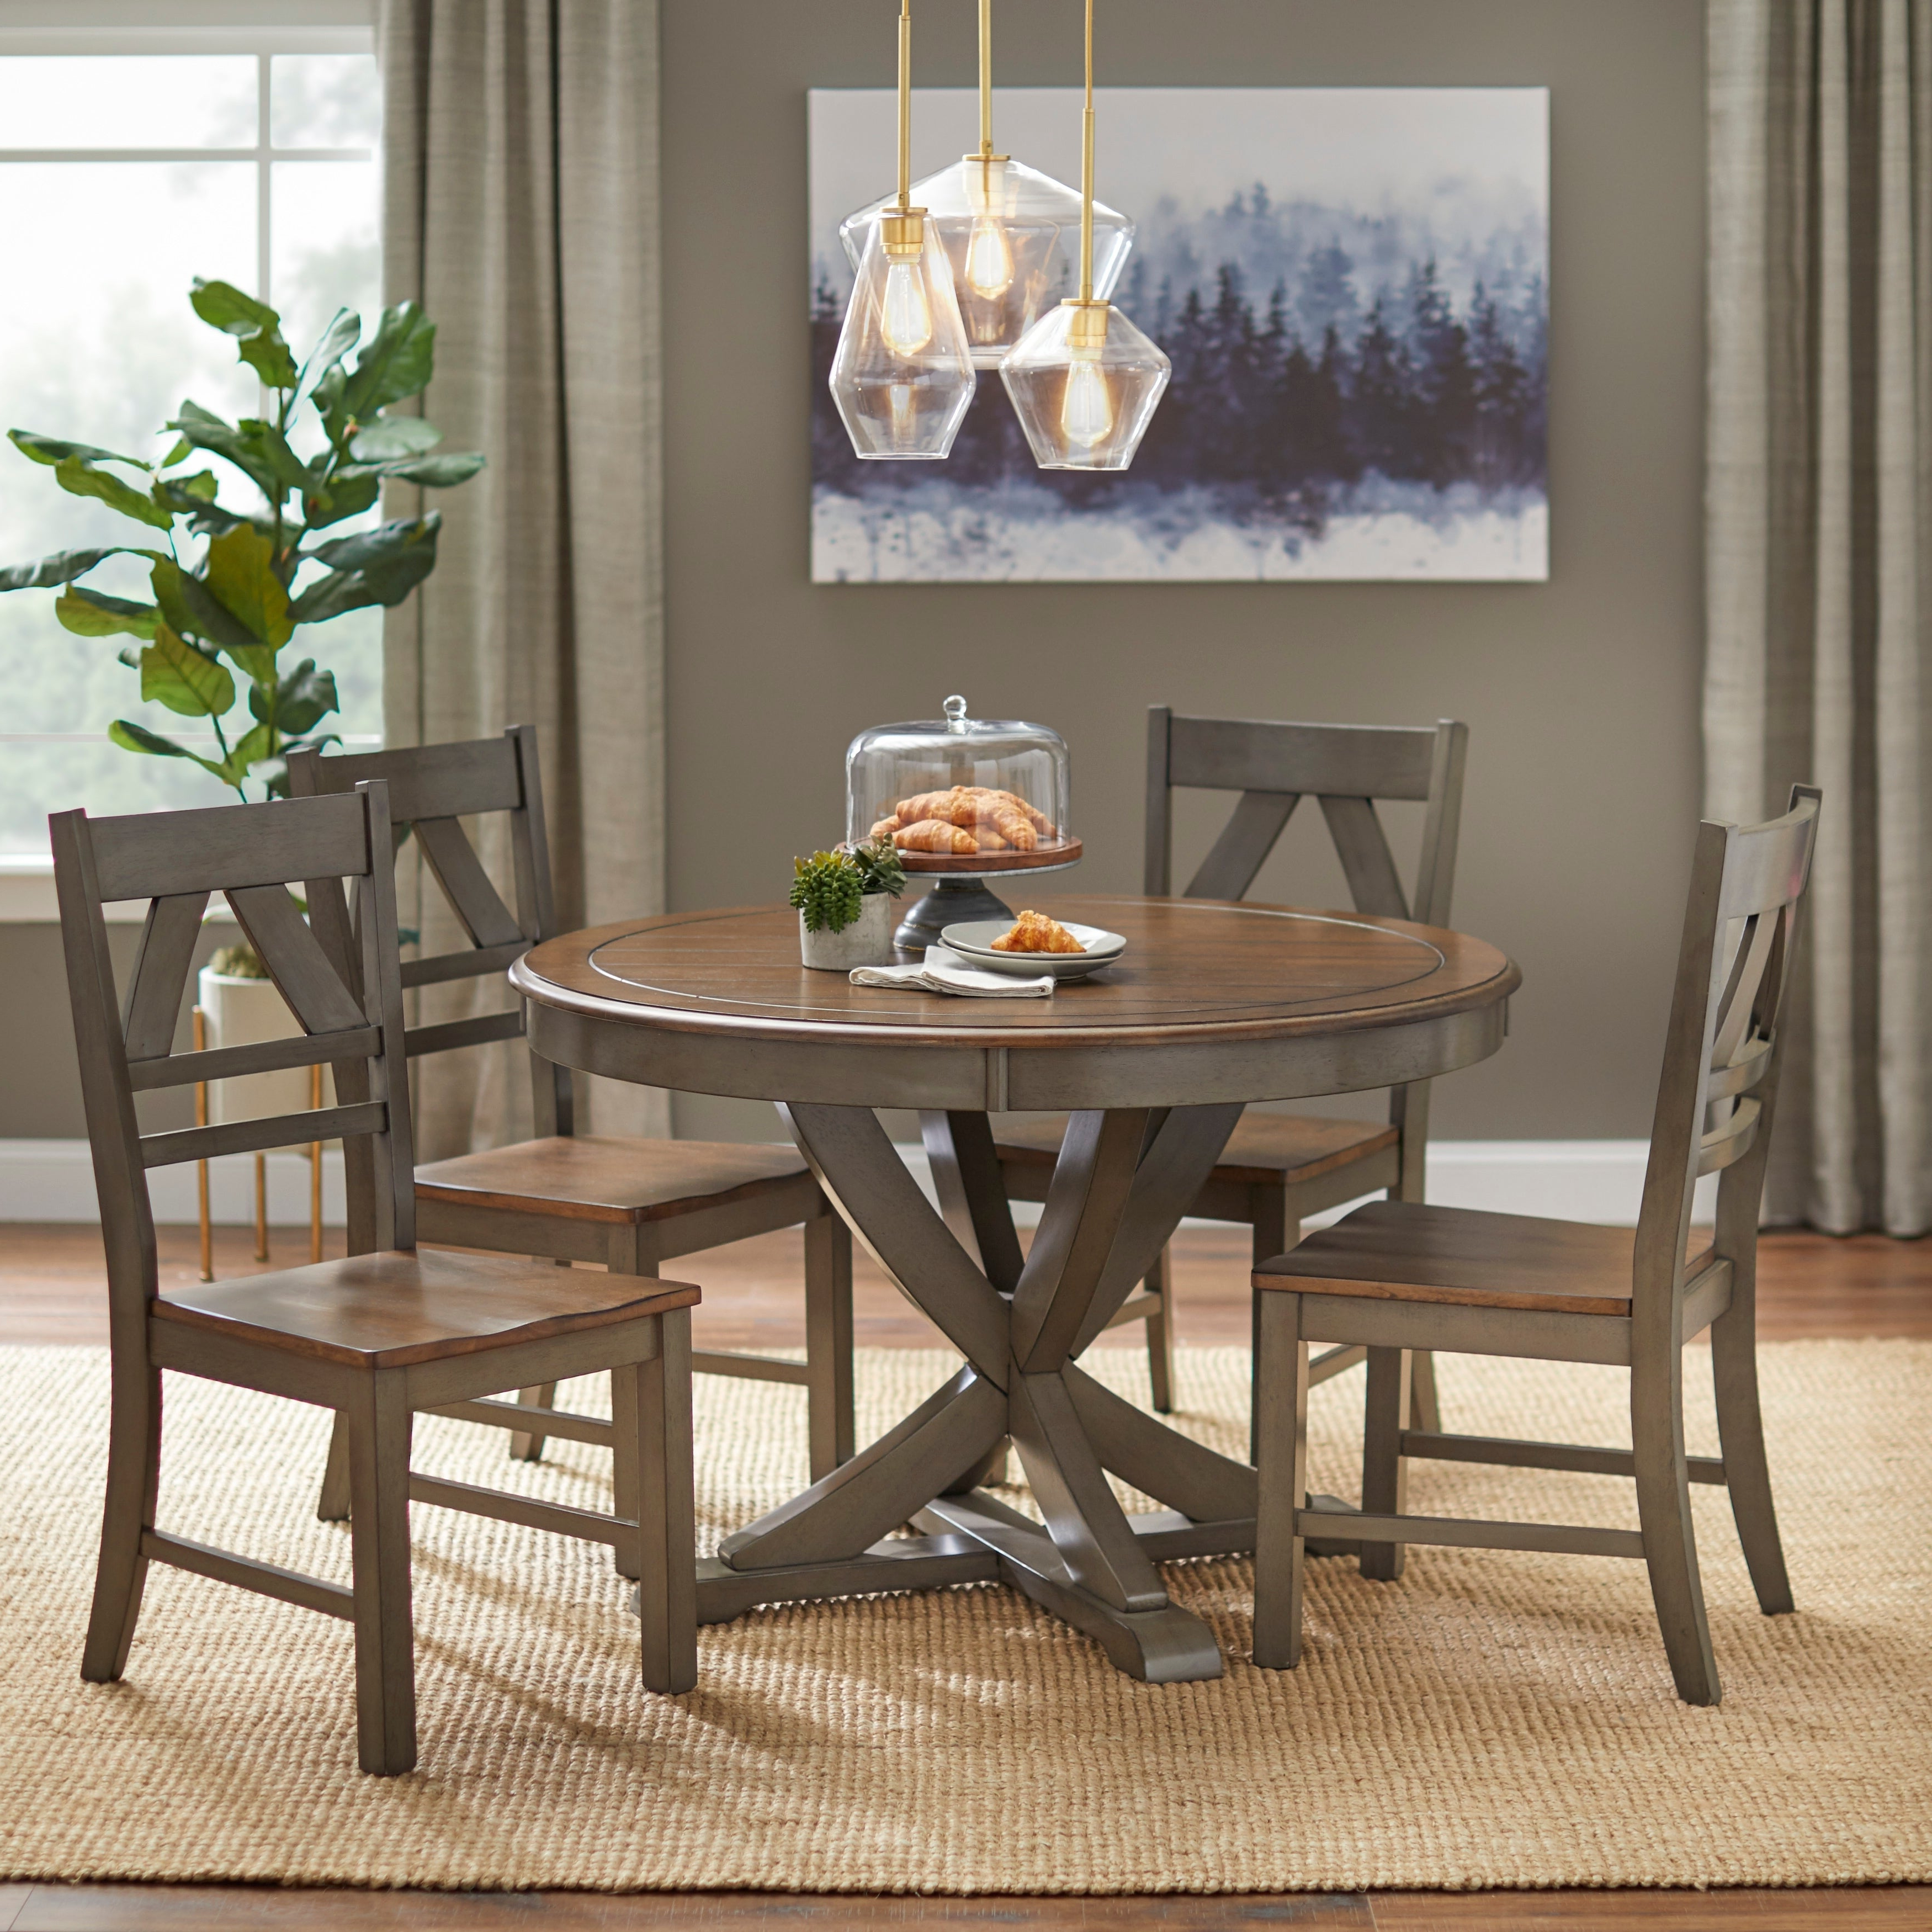 Trendy Buy 3-Piece Sets Kitchen & Dining Room Sets Online At Overstock with regard to Rossiter 3 Piece Dining Sets